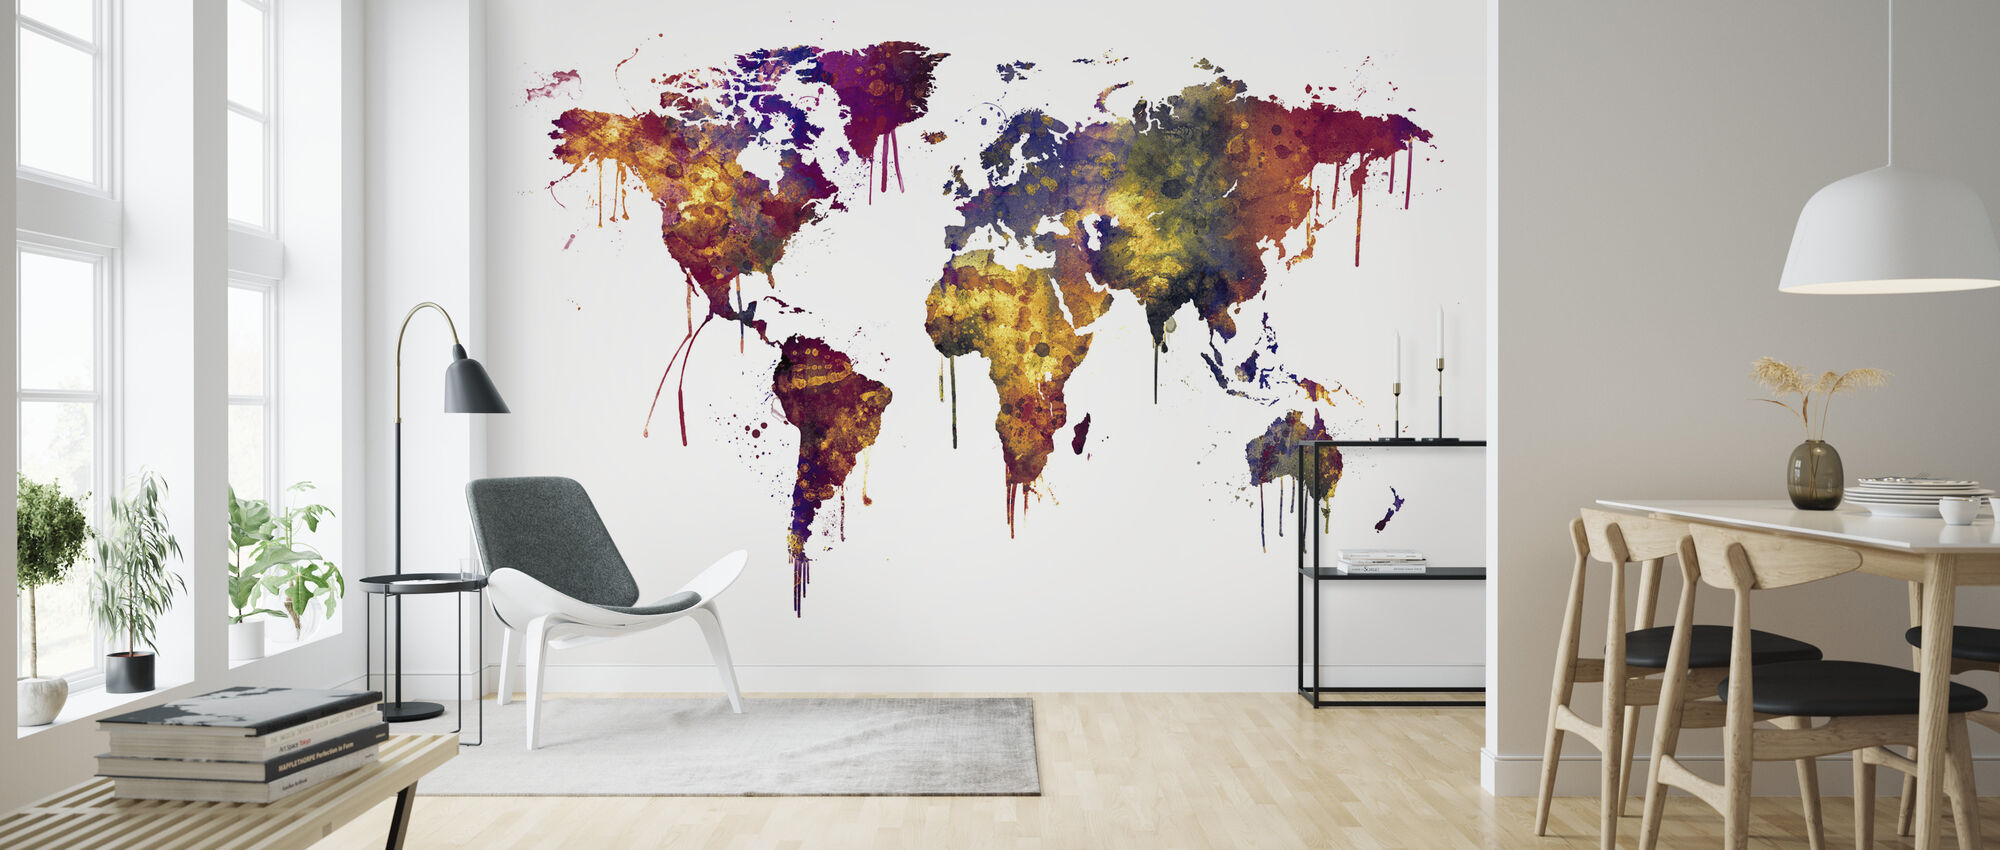 Watercolor World Map 2 - Wallpaper - Living Room